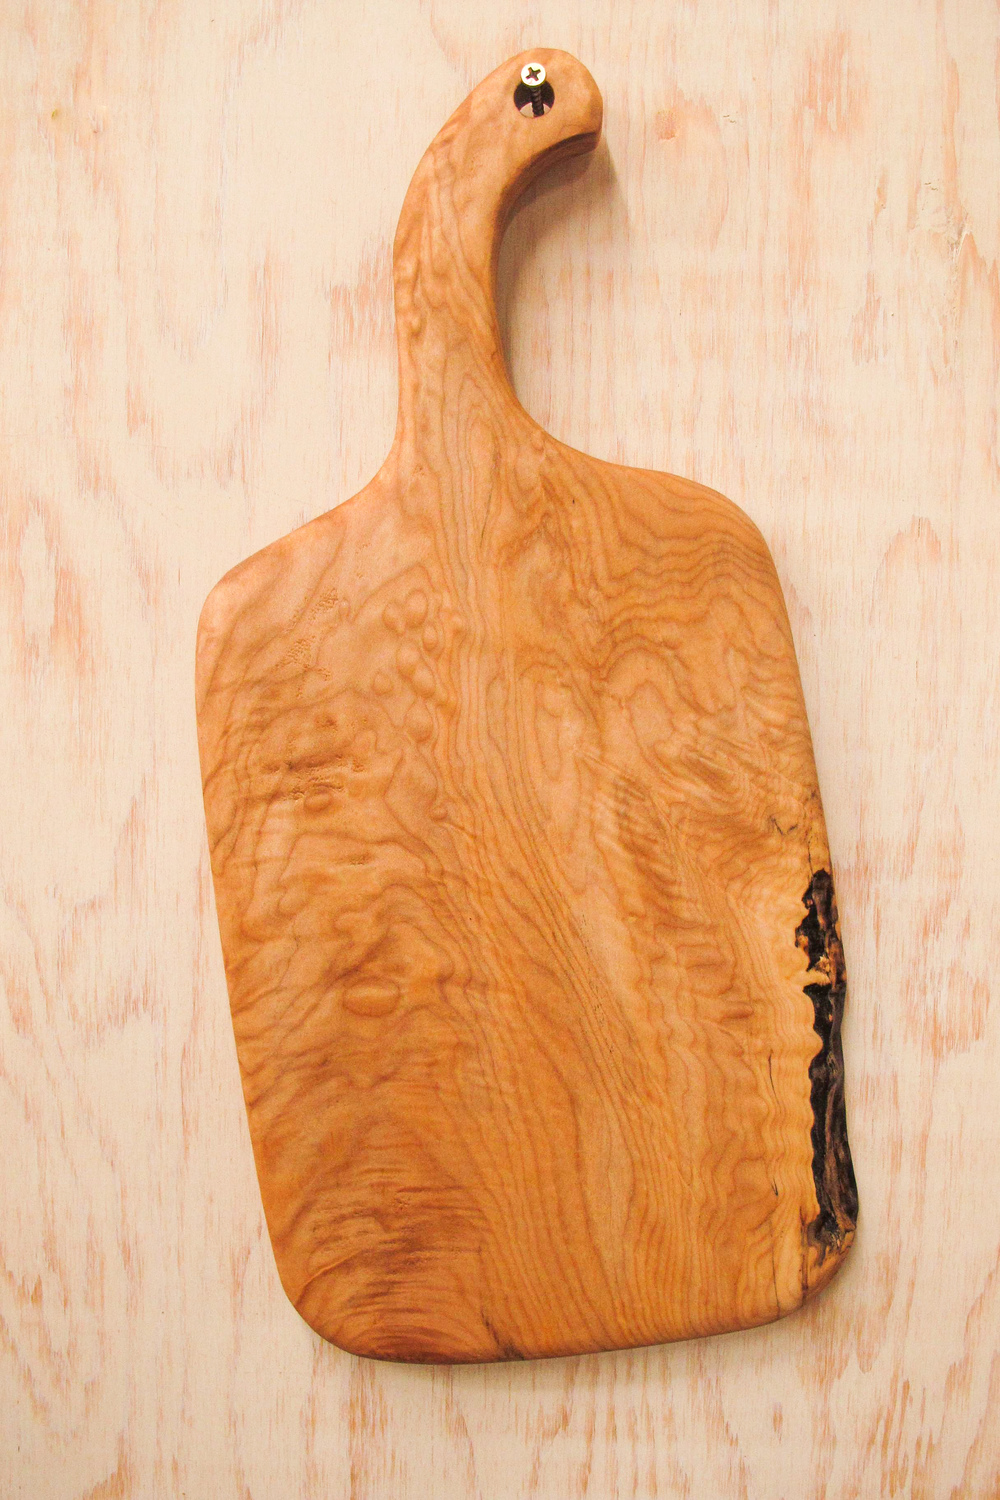 CuttingBoard34.jpg